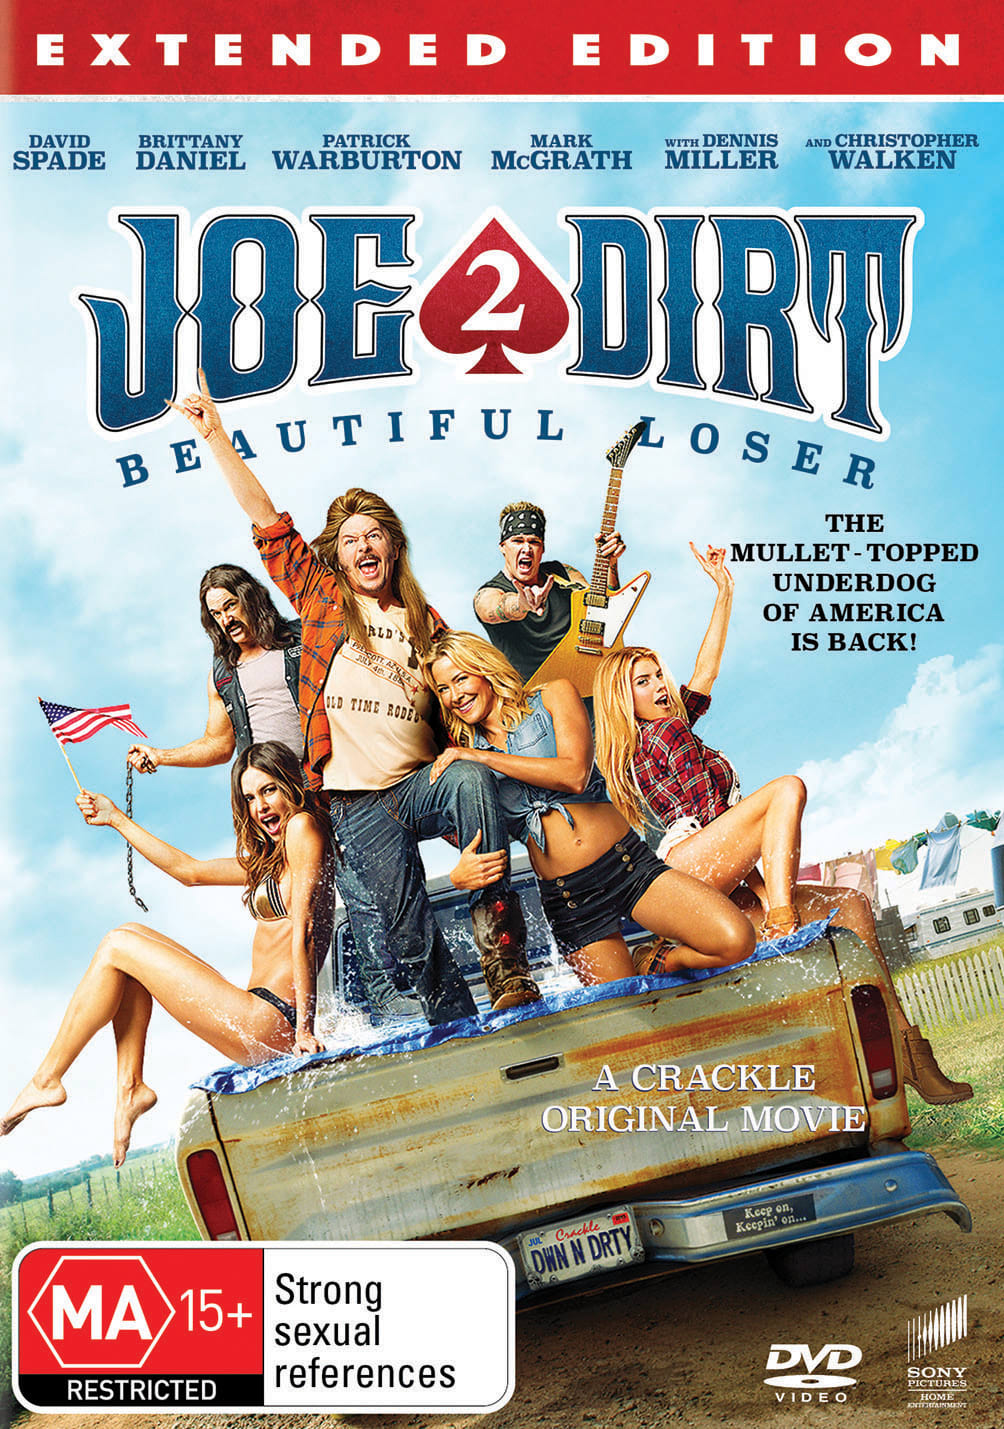 Joe Dirt 2: Beautiful Loser [DVD]